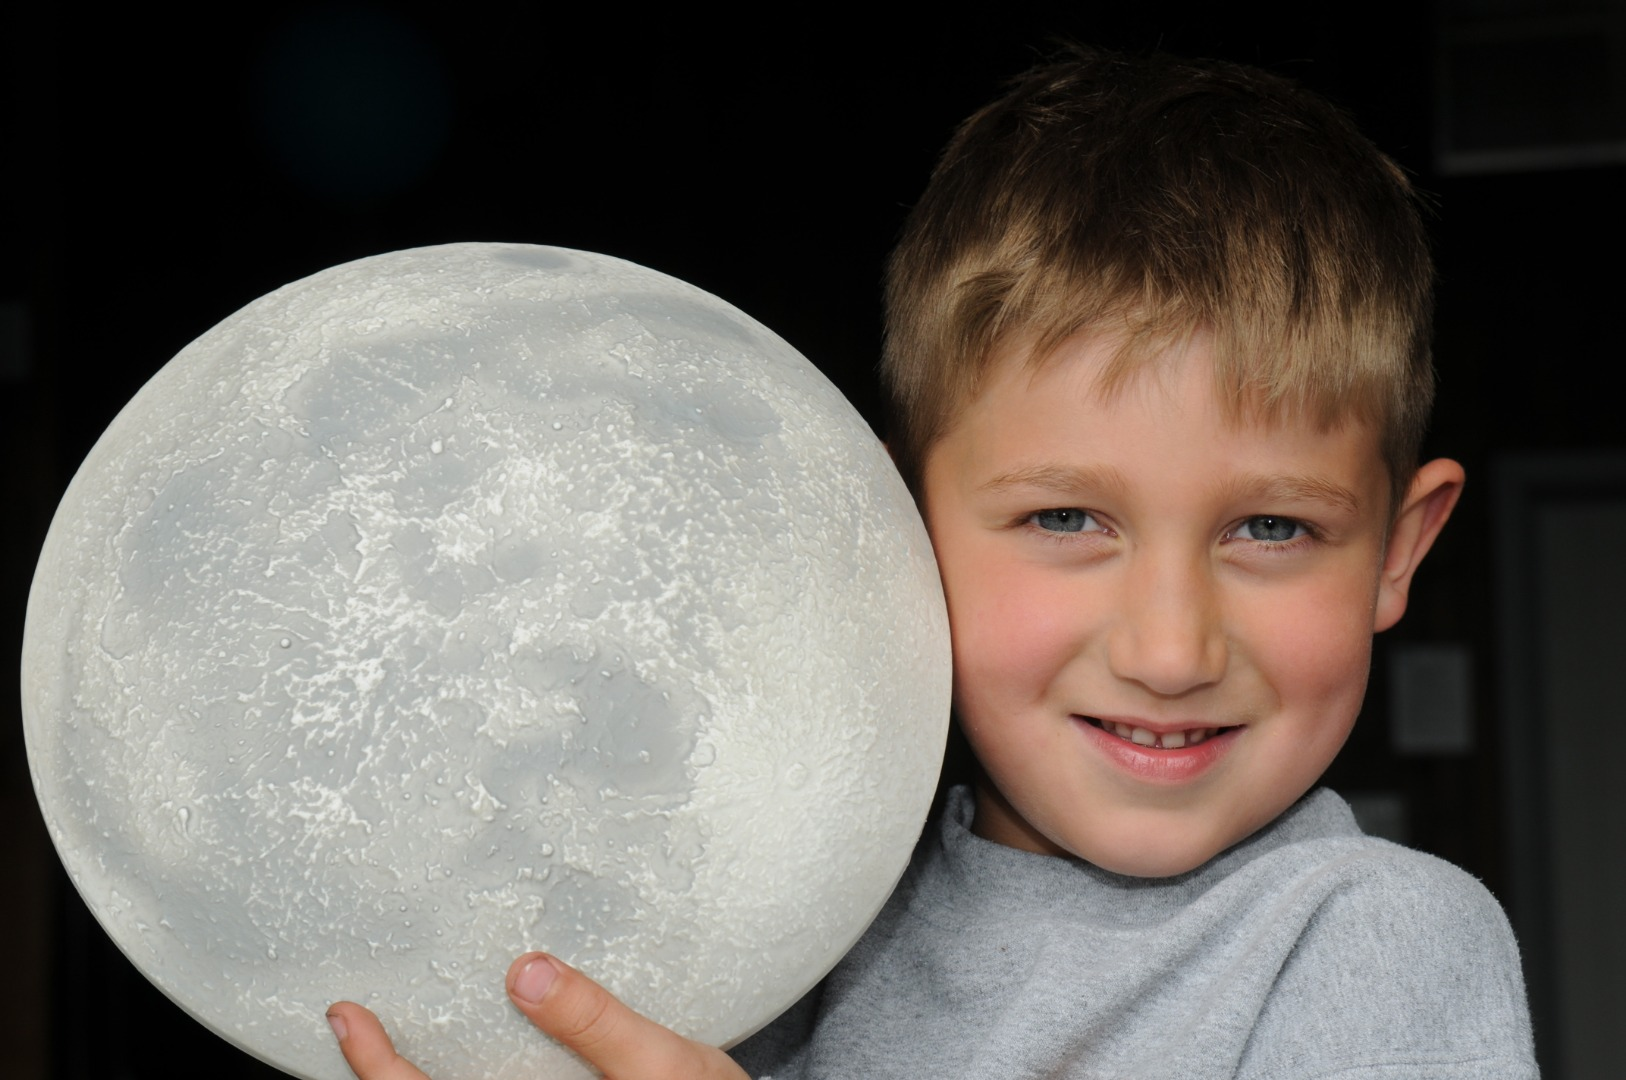 Summer Holiday Fun for Children Continues at Cheshire's Lion Salt Works